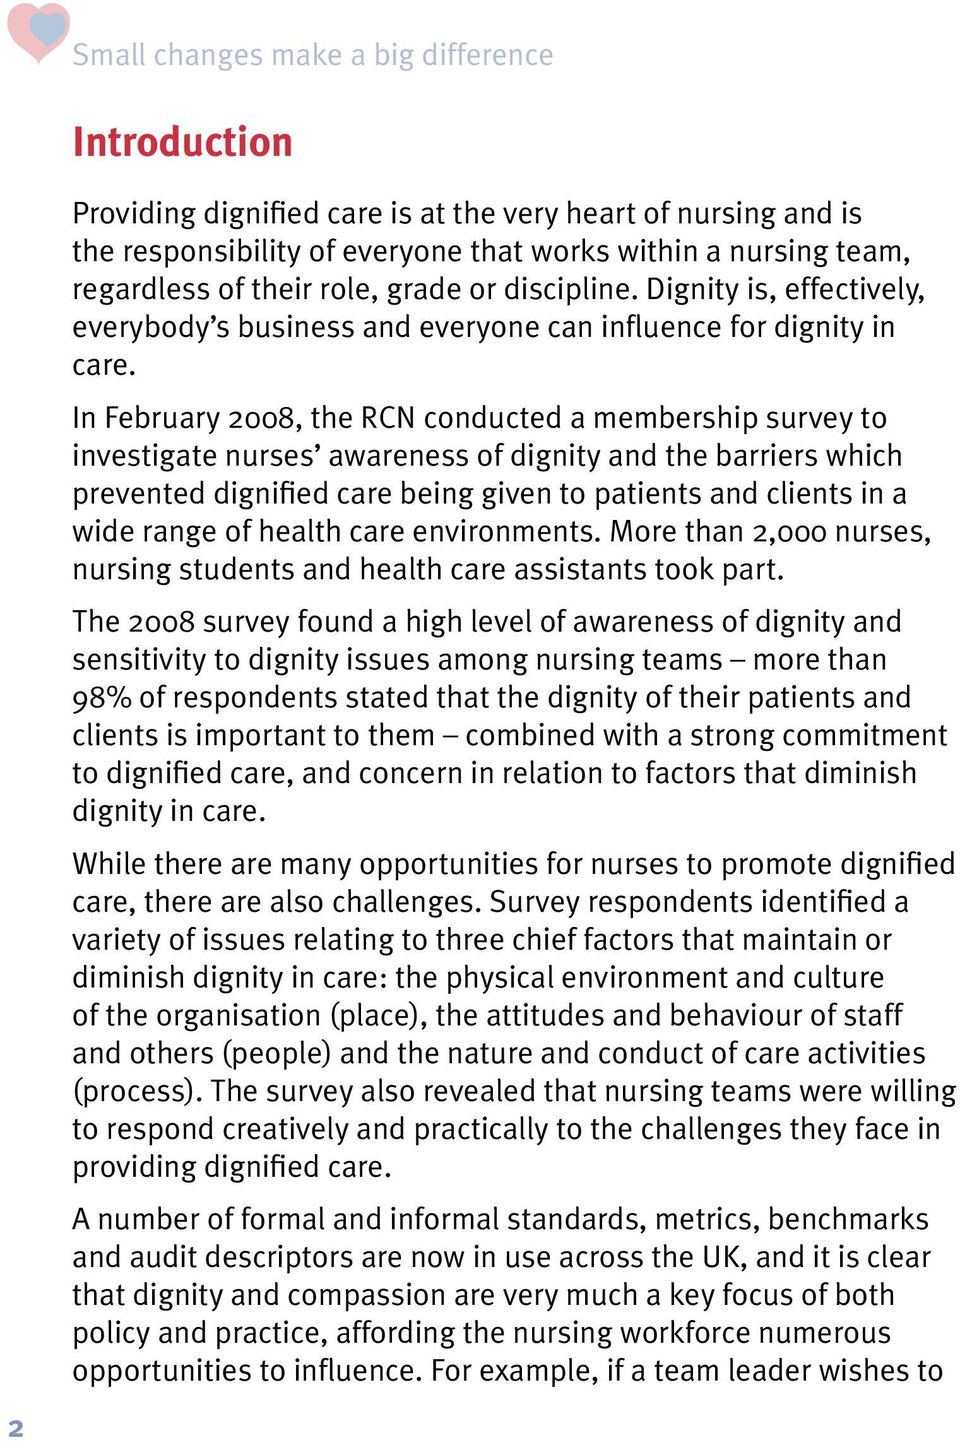 In February 2008, the RCN conducted a membership survey to investigate nurses awareness of dignity and the barriers which prevented dignified care being given to patients and clients in a wide range